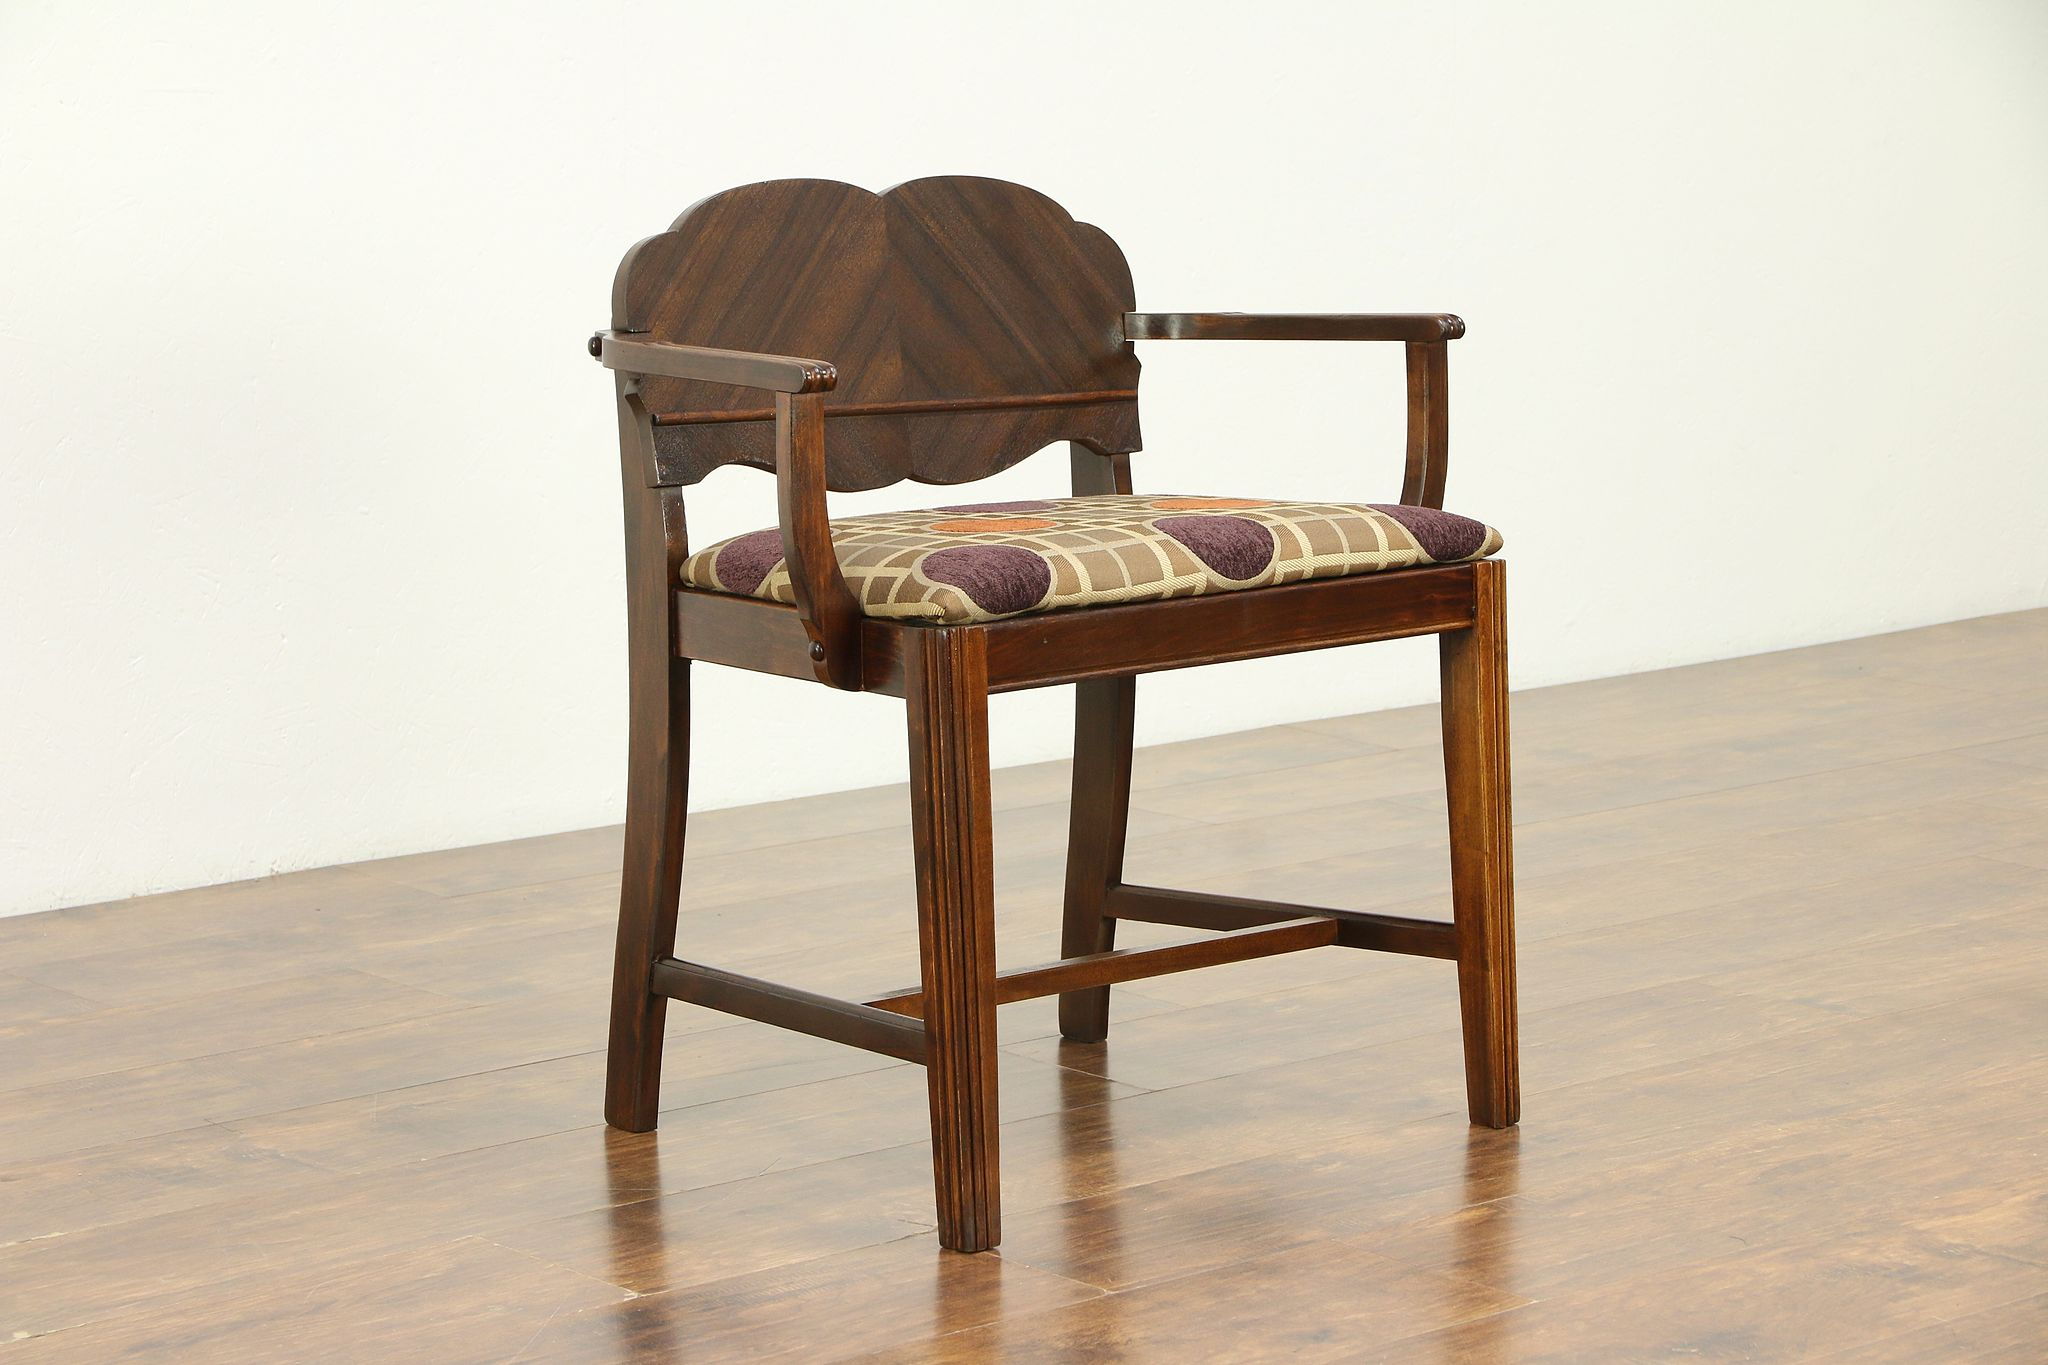 Sold Art Deco 1930 Vintage Vanity Bench Or Chair New Upholstery 30467 Harp Gallery Antiques Furniture